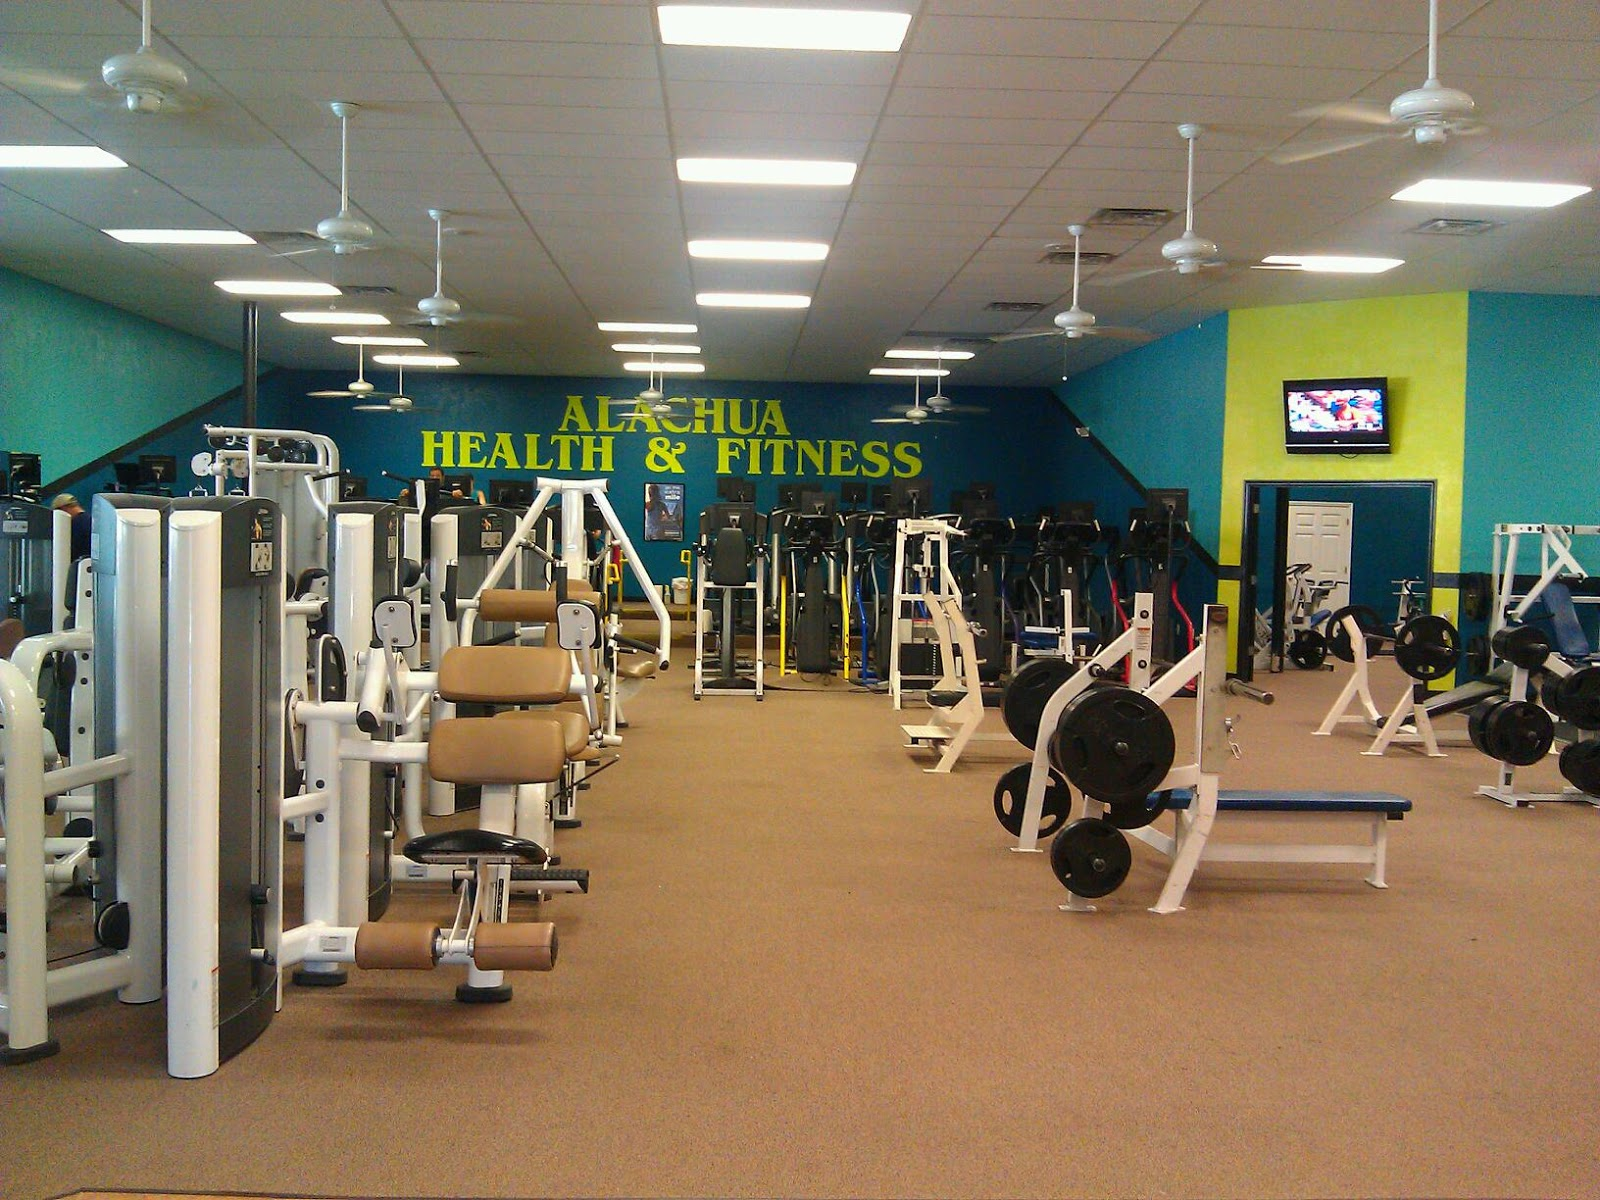 Alachua Health & Fitness - photo